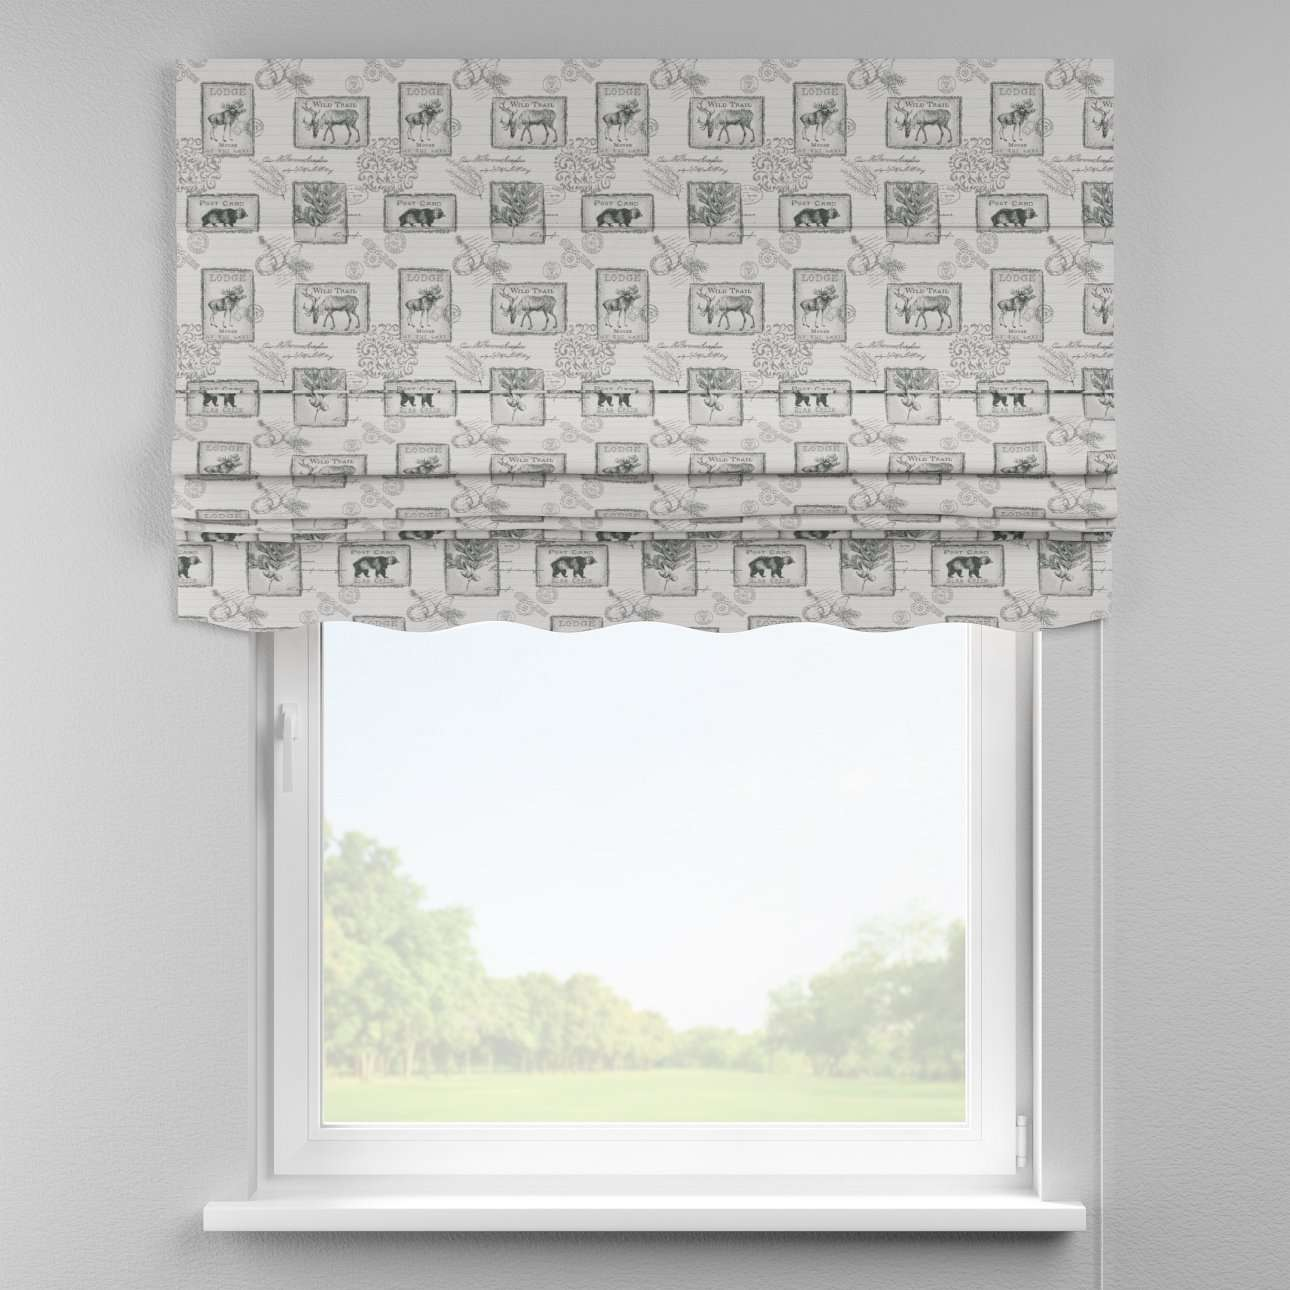 Florence roman blind  80 x 170 cm (31.5 x 67 inch) in collection Christmas , fabric: 630-18